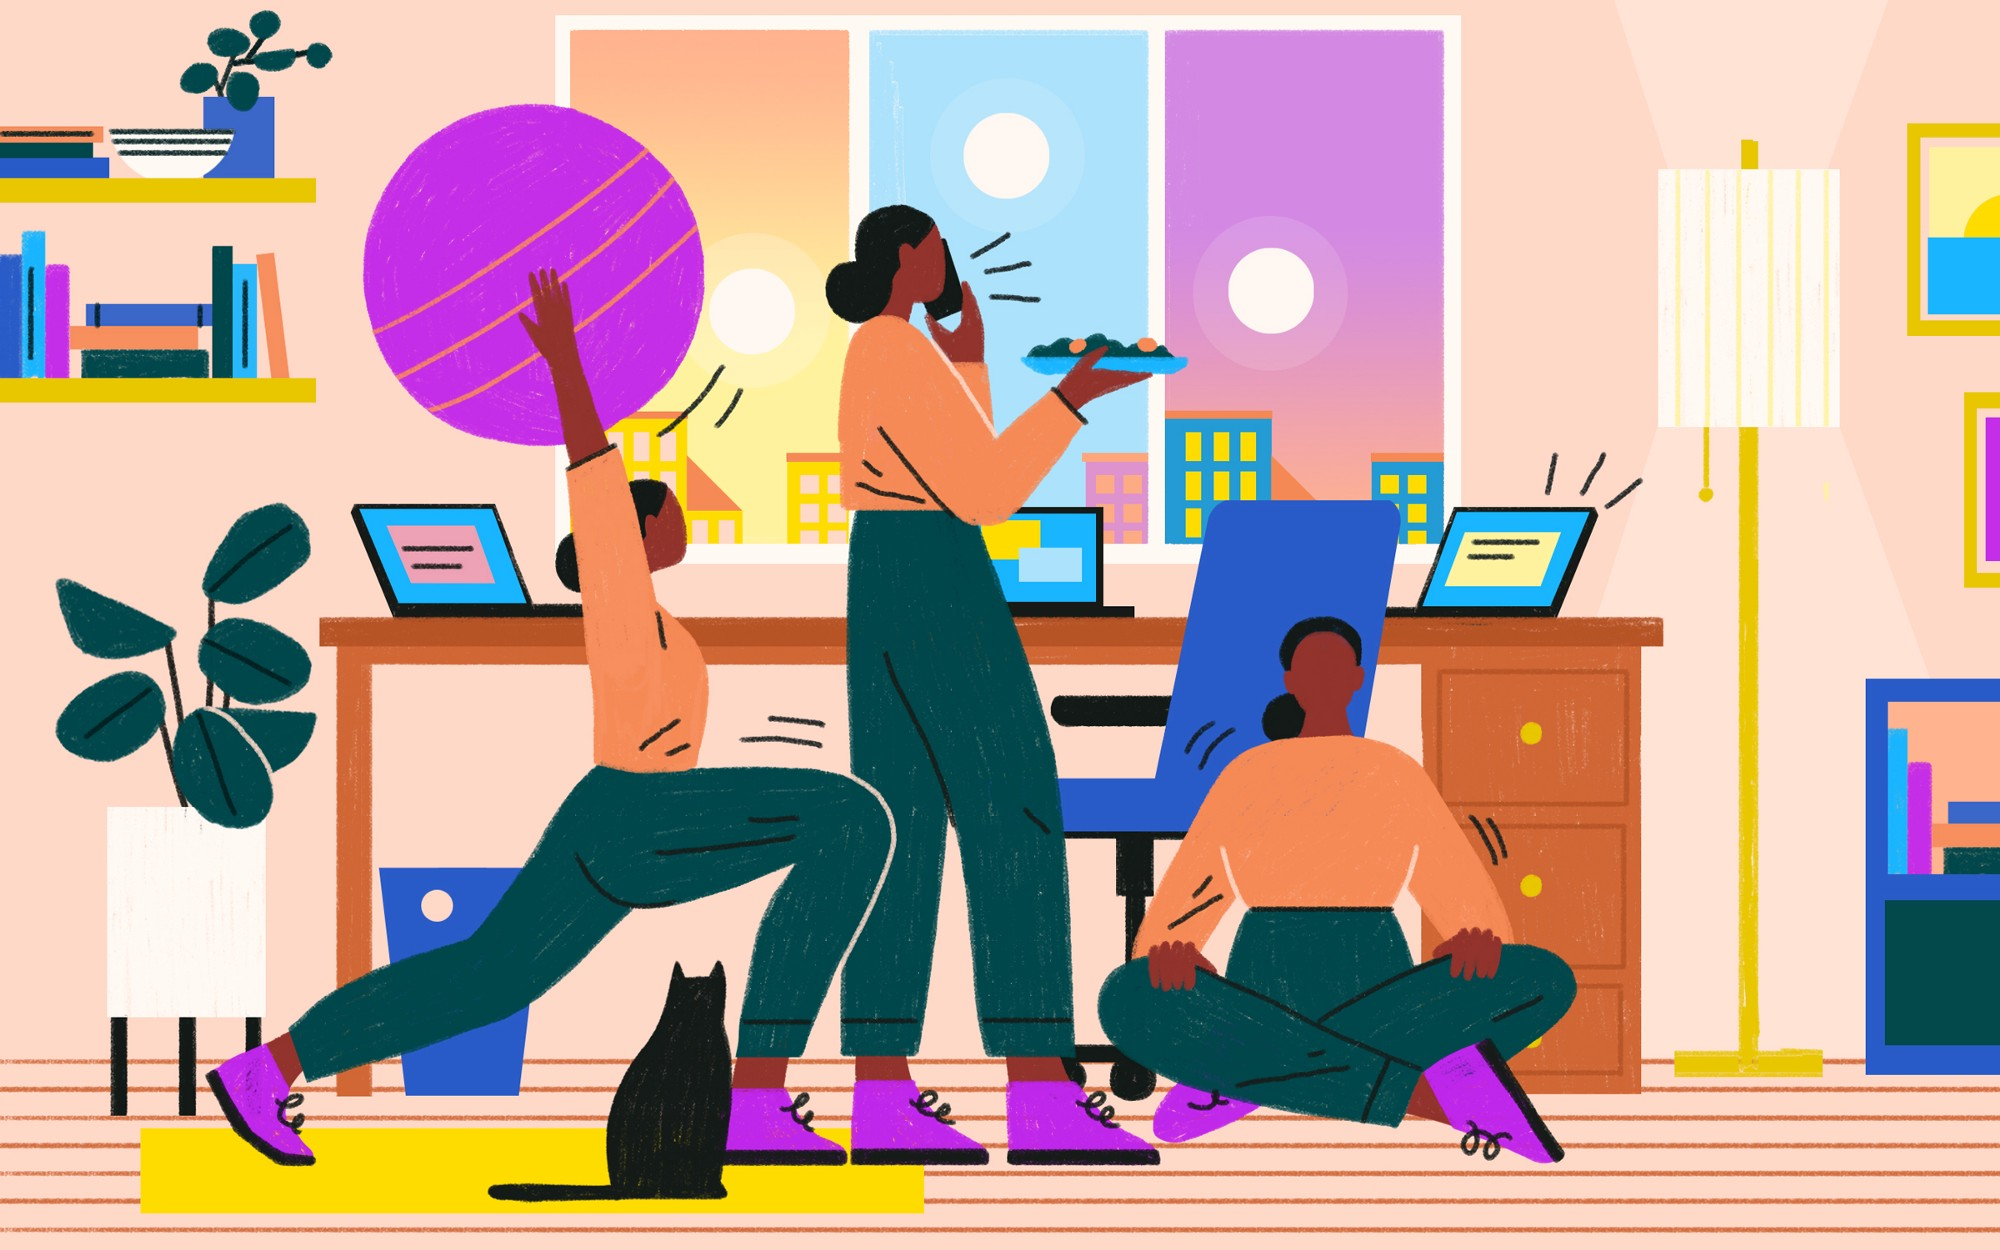 A woman stretches, talks on phone, and meditates while taking work breaks from home.